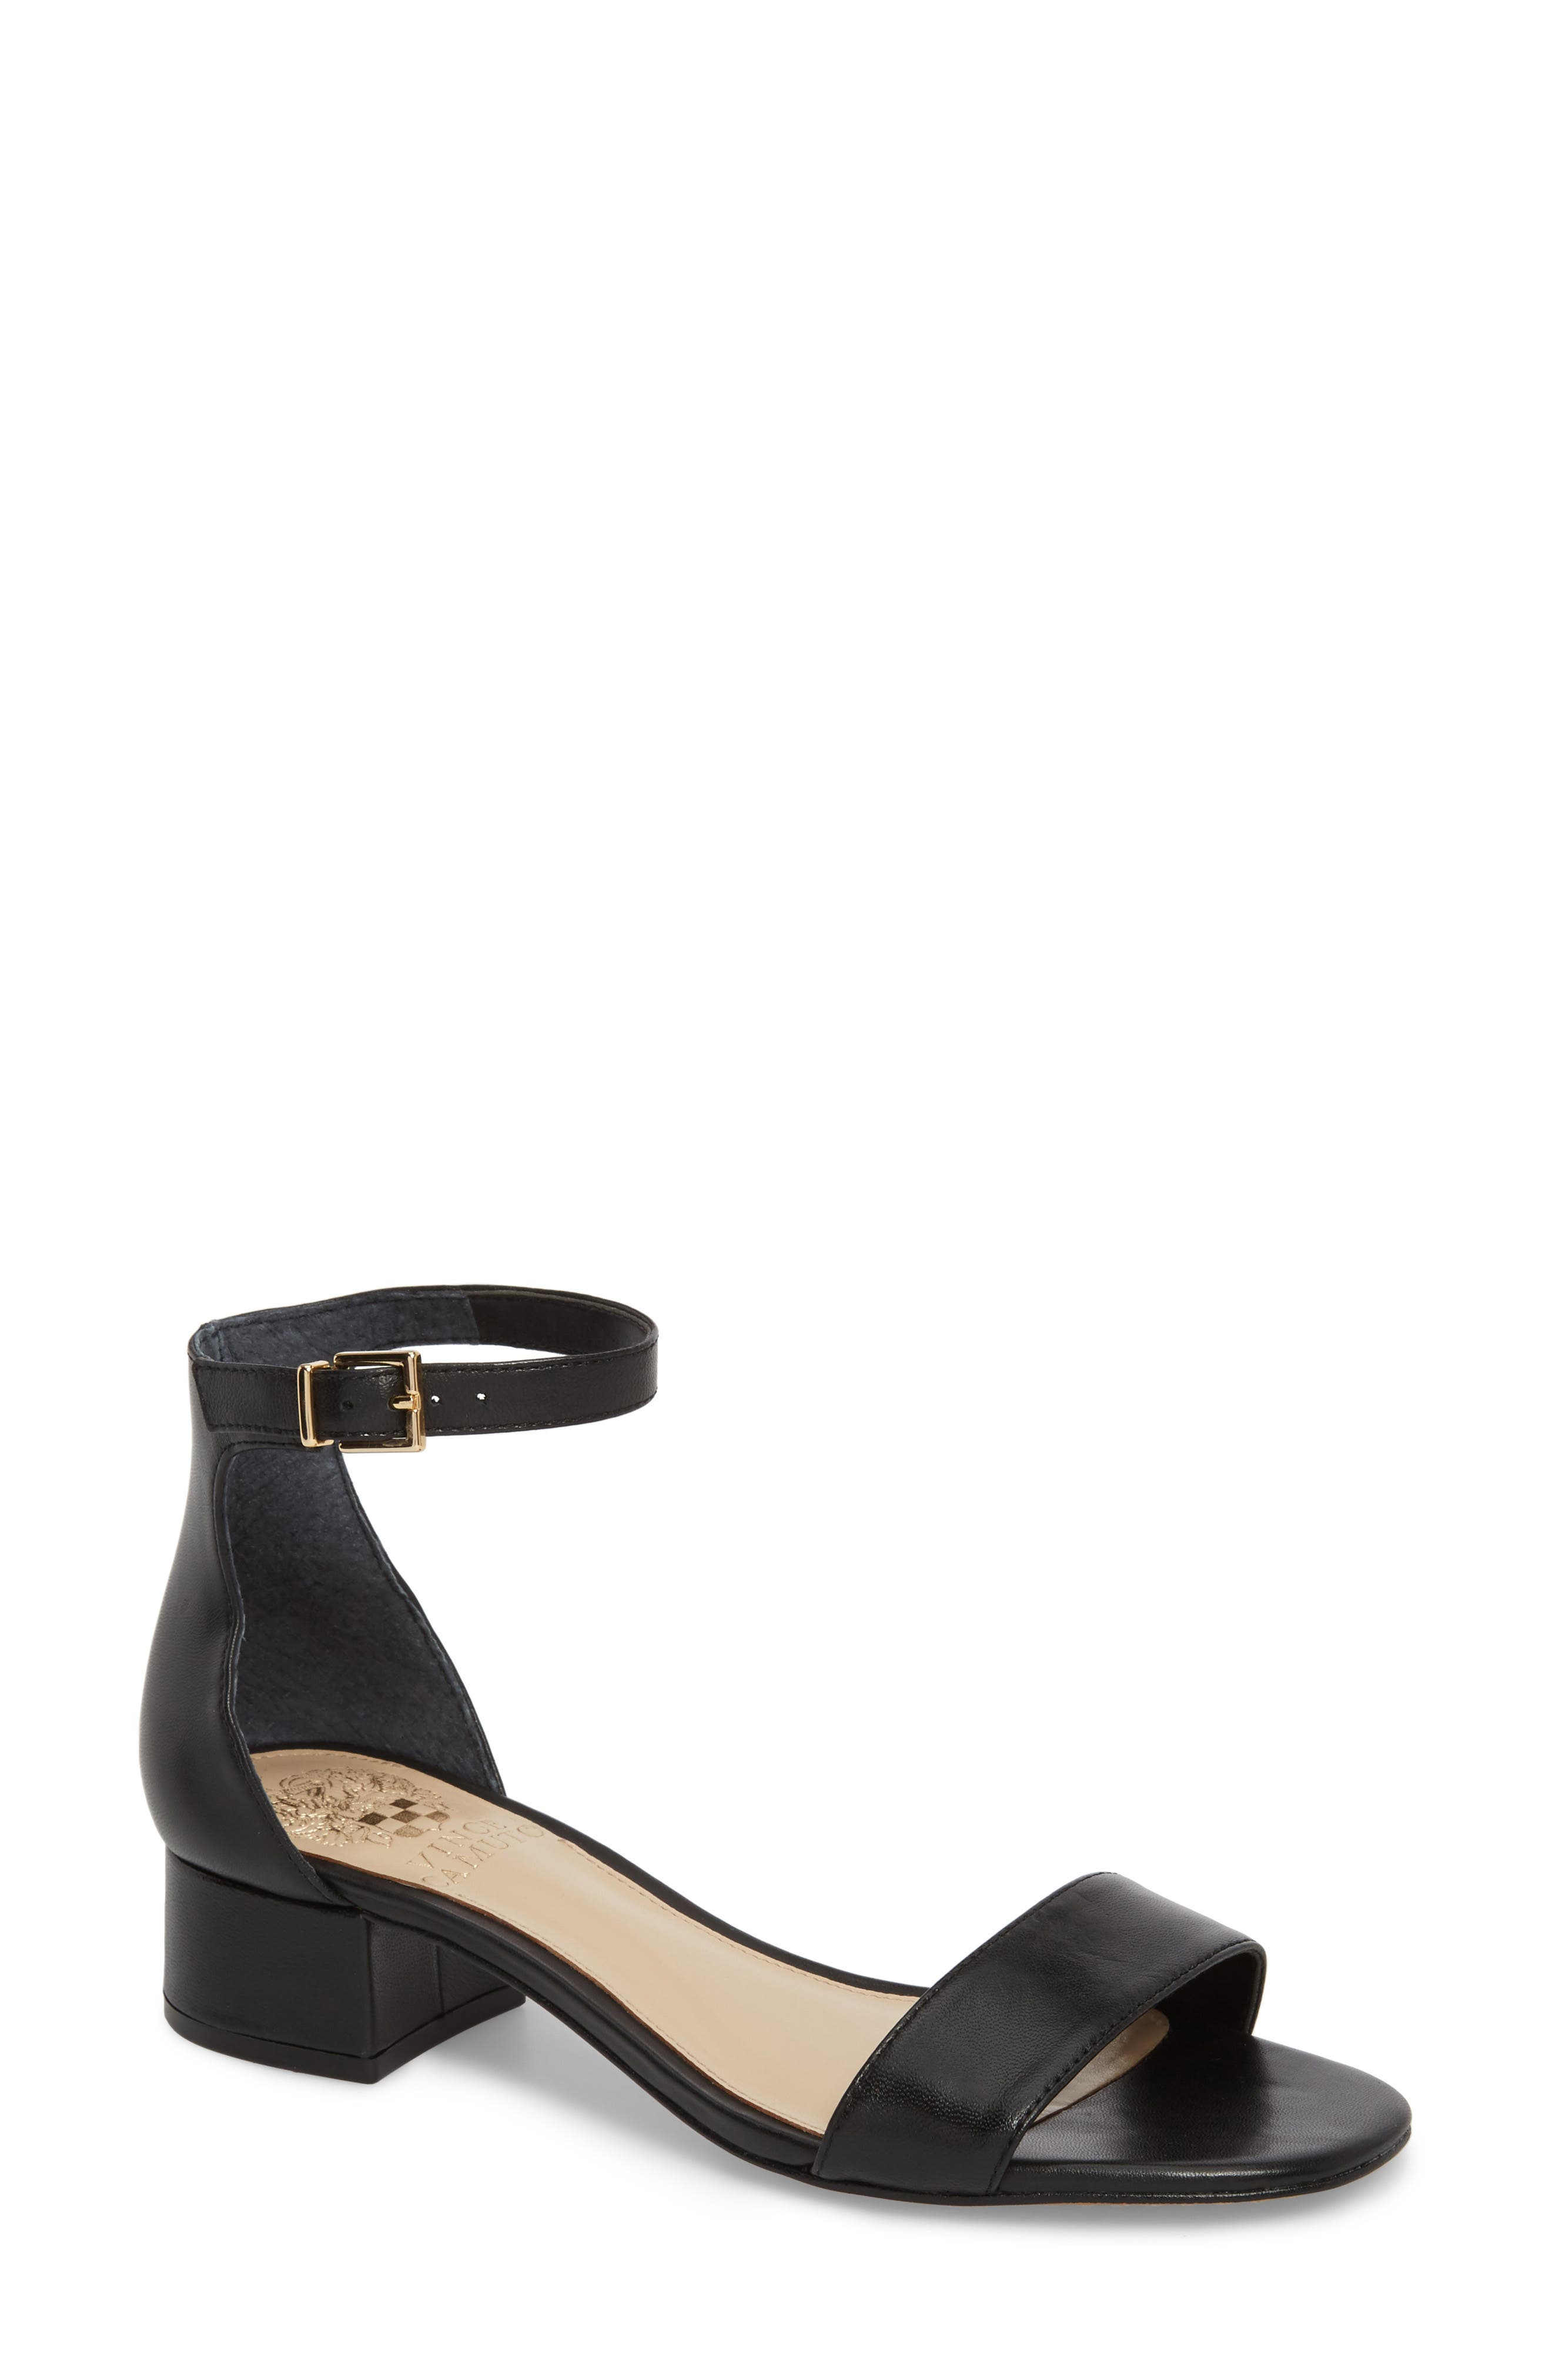 VINCE CAMUTO Sasseta Sandal, Main, color, BLACK LEATHER